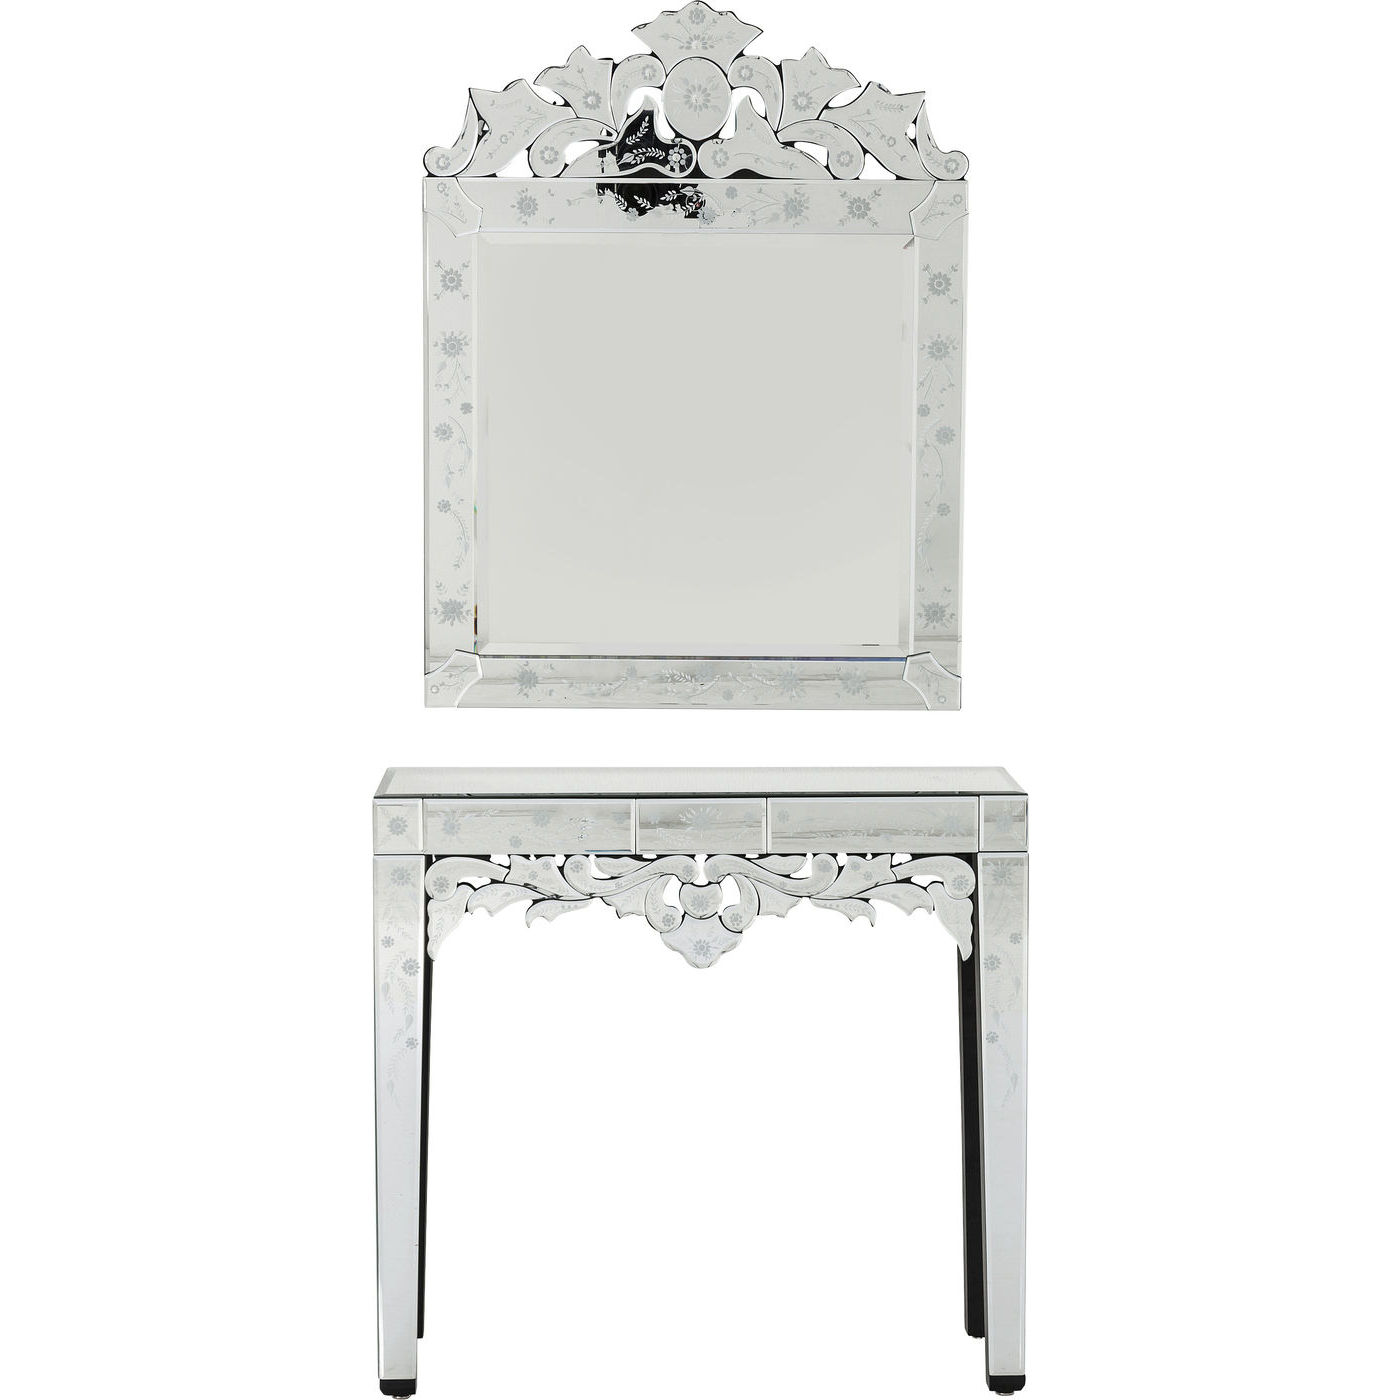 konsolbord mirror princess i spejlglas udsk ringer fint. Black Bedroom Furniture Sets. Home Design Ideas